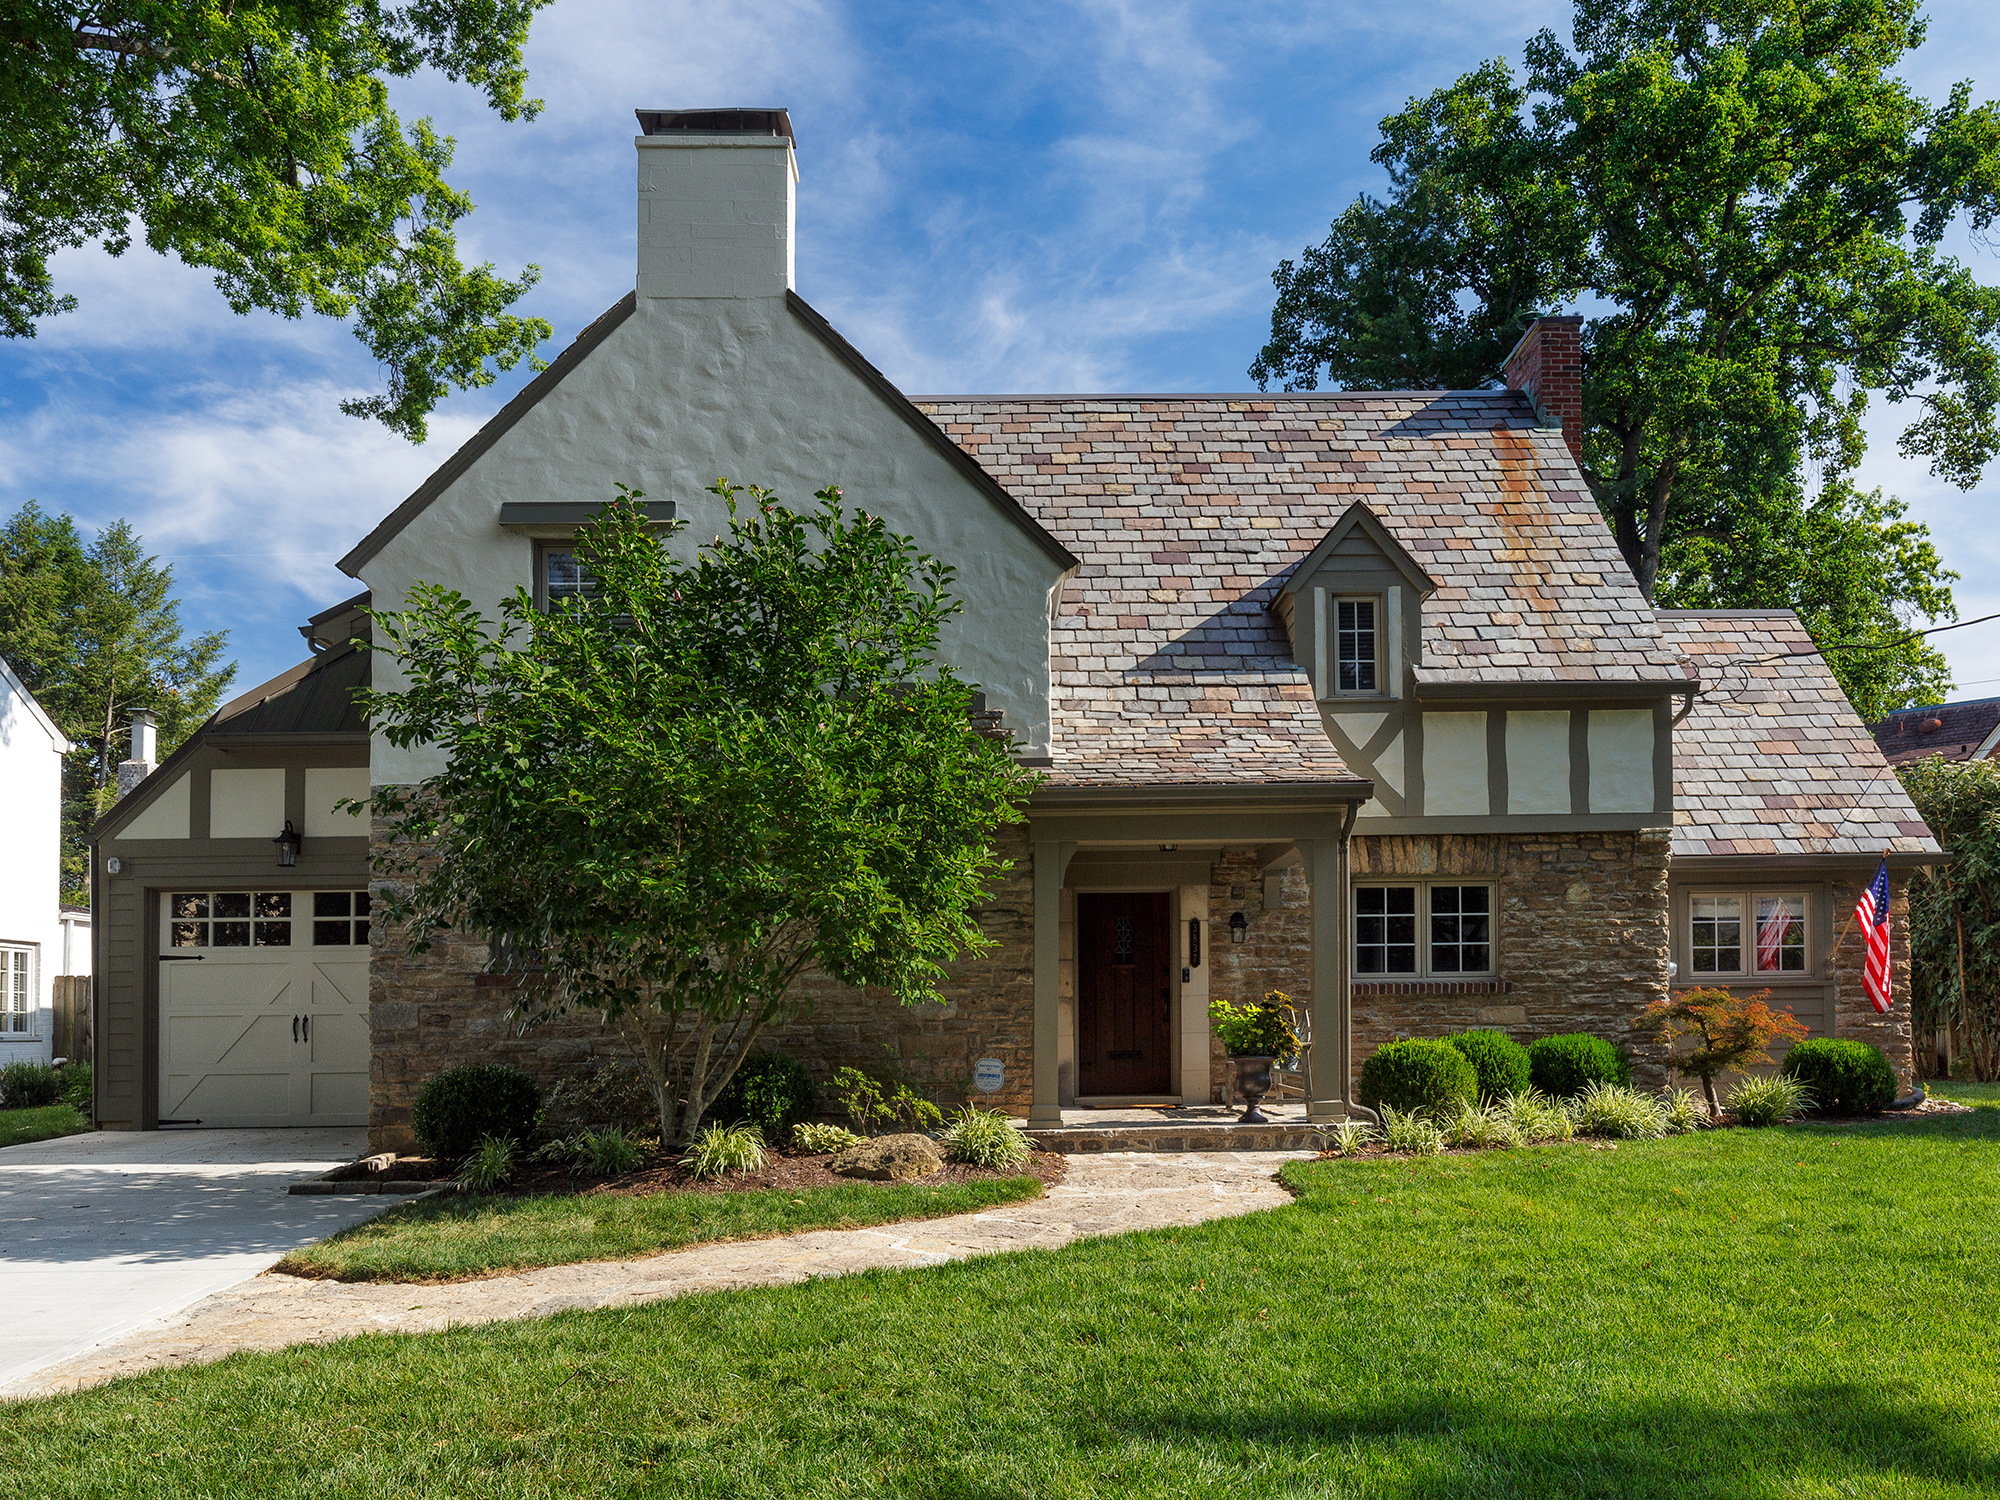 covered front porch Tudor style Cincinnati residential architecture Tom Wilcox Architect